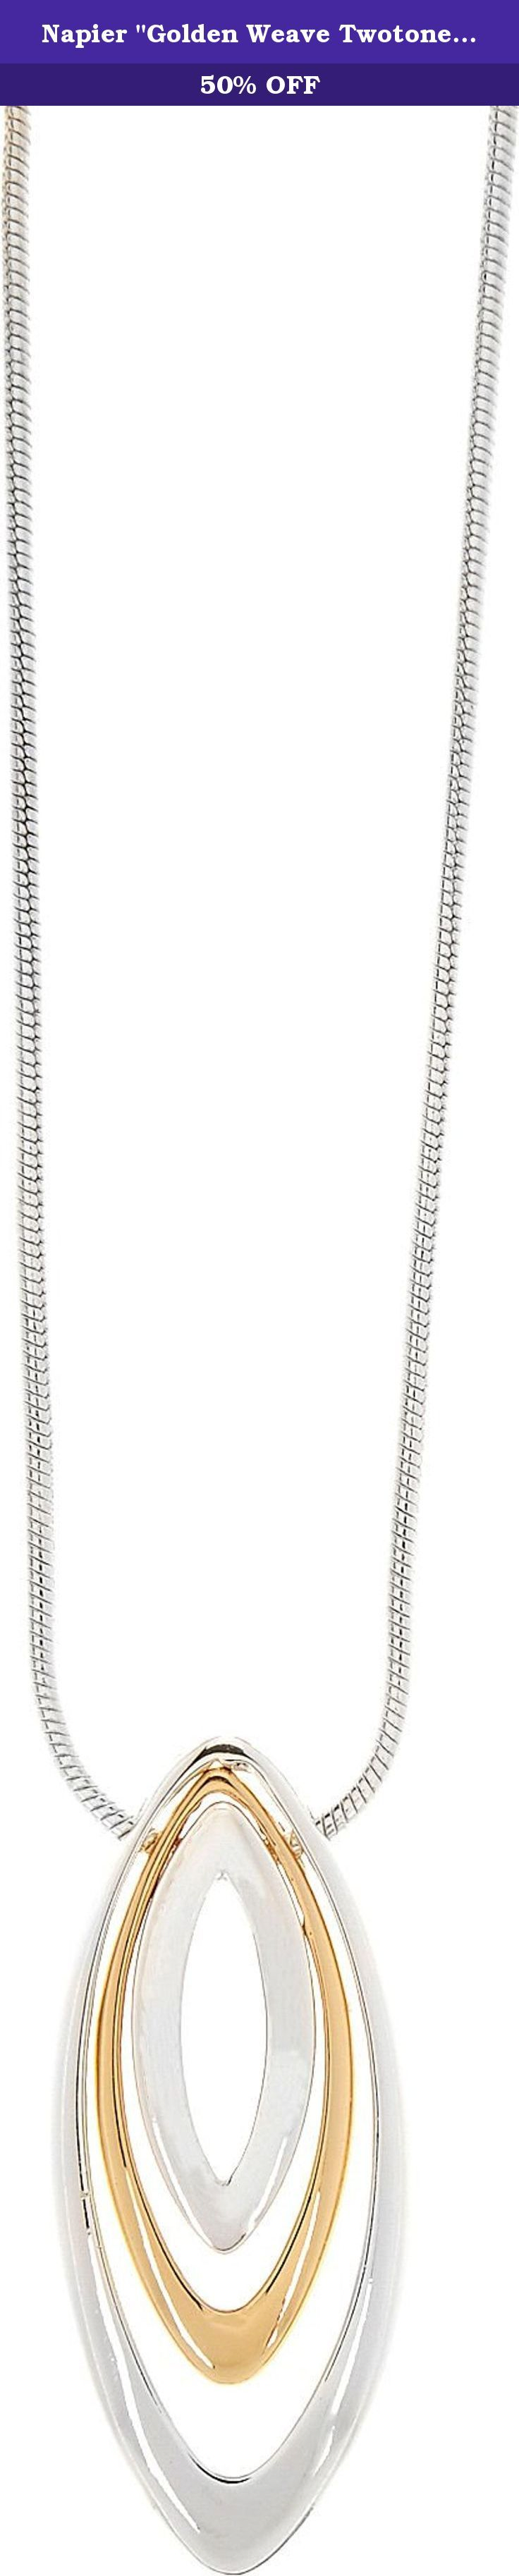 """Napier """"Golden Weave Twotone"""" Two-Tone Adjustable Pendant Necklace, 16"""" + 3"""" Extender. Necklace by Napier brings to life great style with a snake chain design along with a pendant of two tone marquise inspired shapes. Length is 16 in. and 3 in. adjustable chain. Pendant is 2 in."""